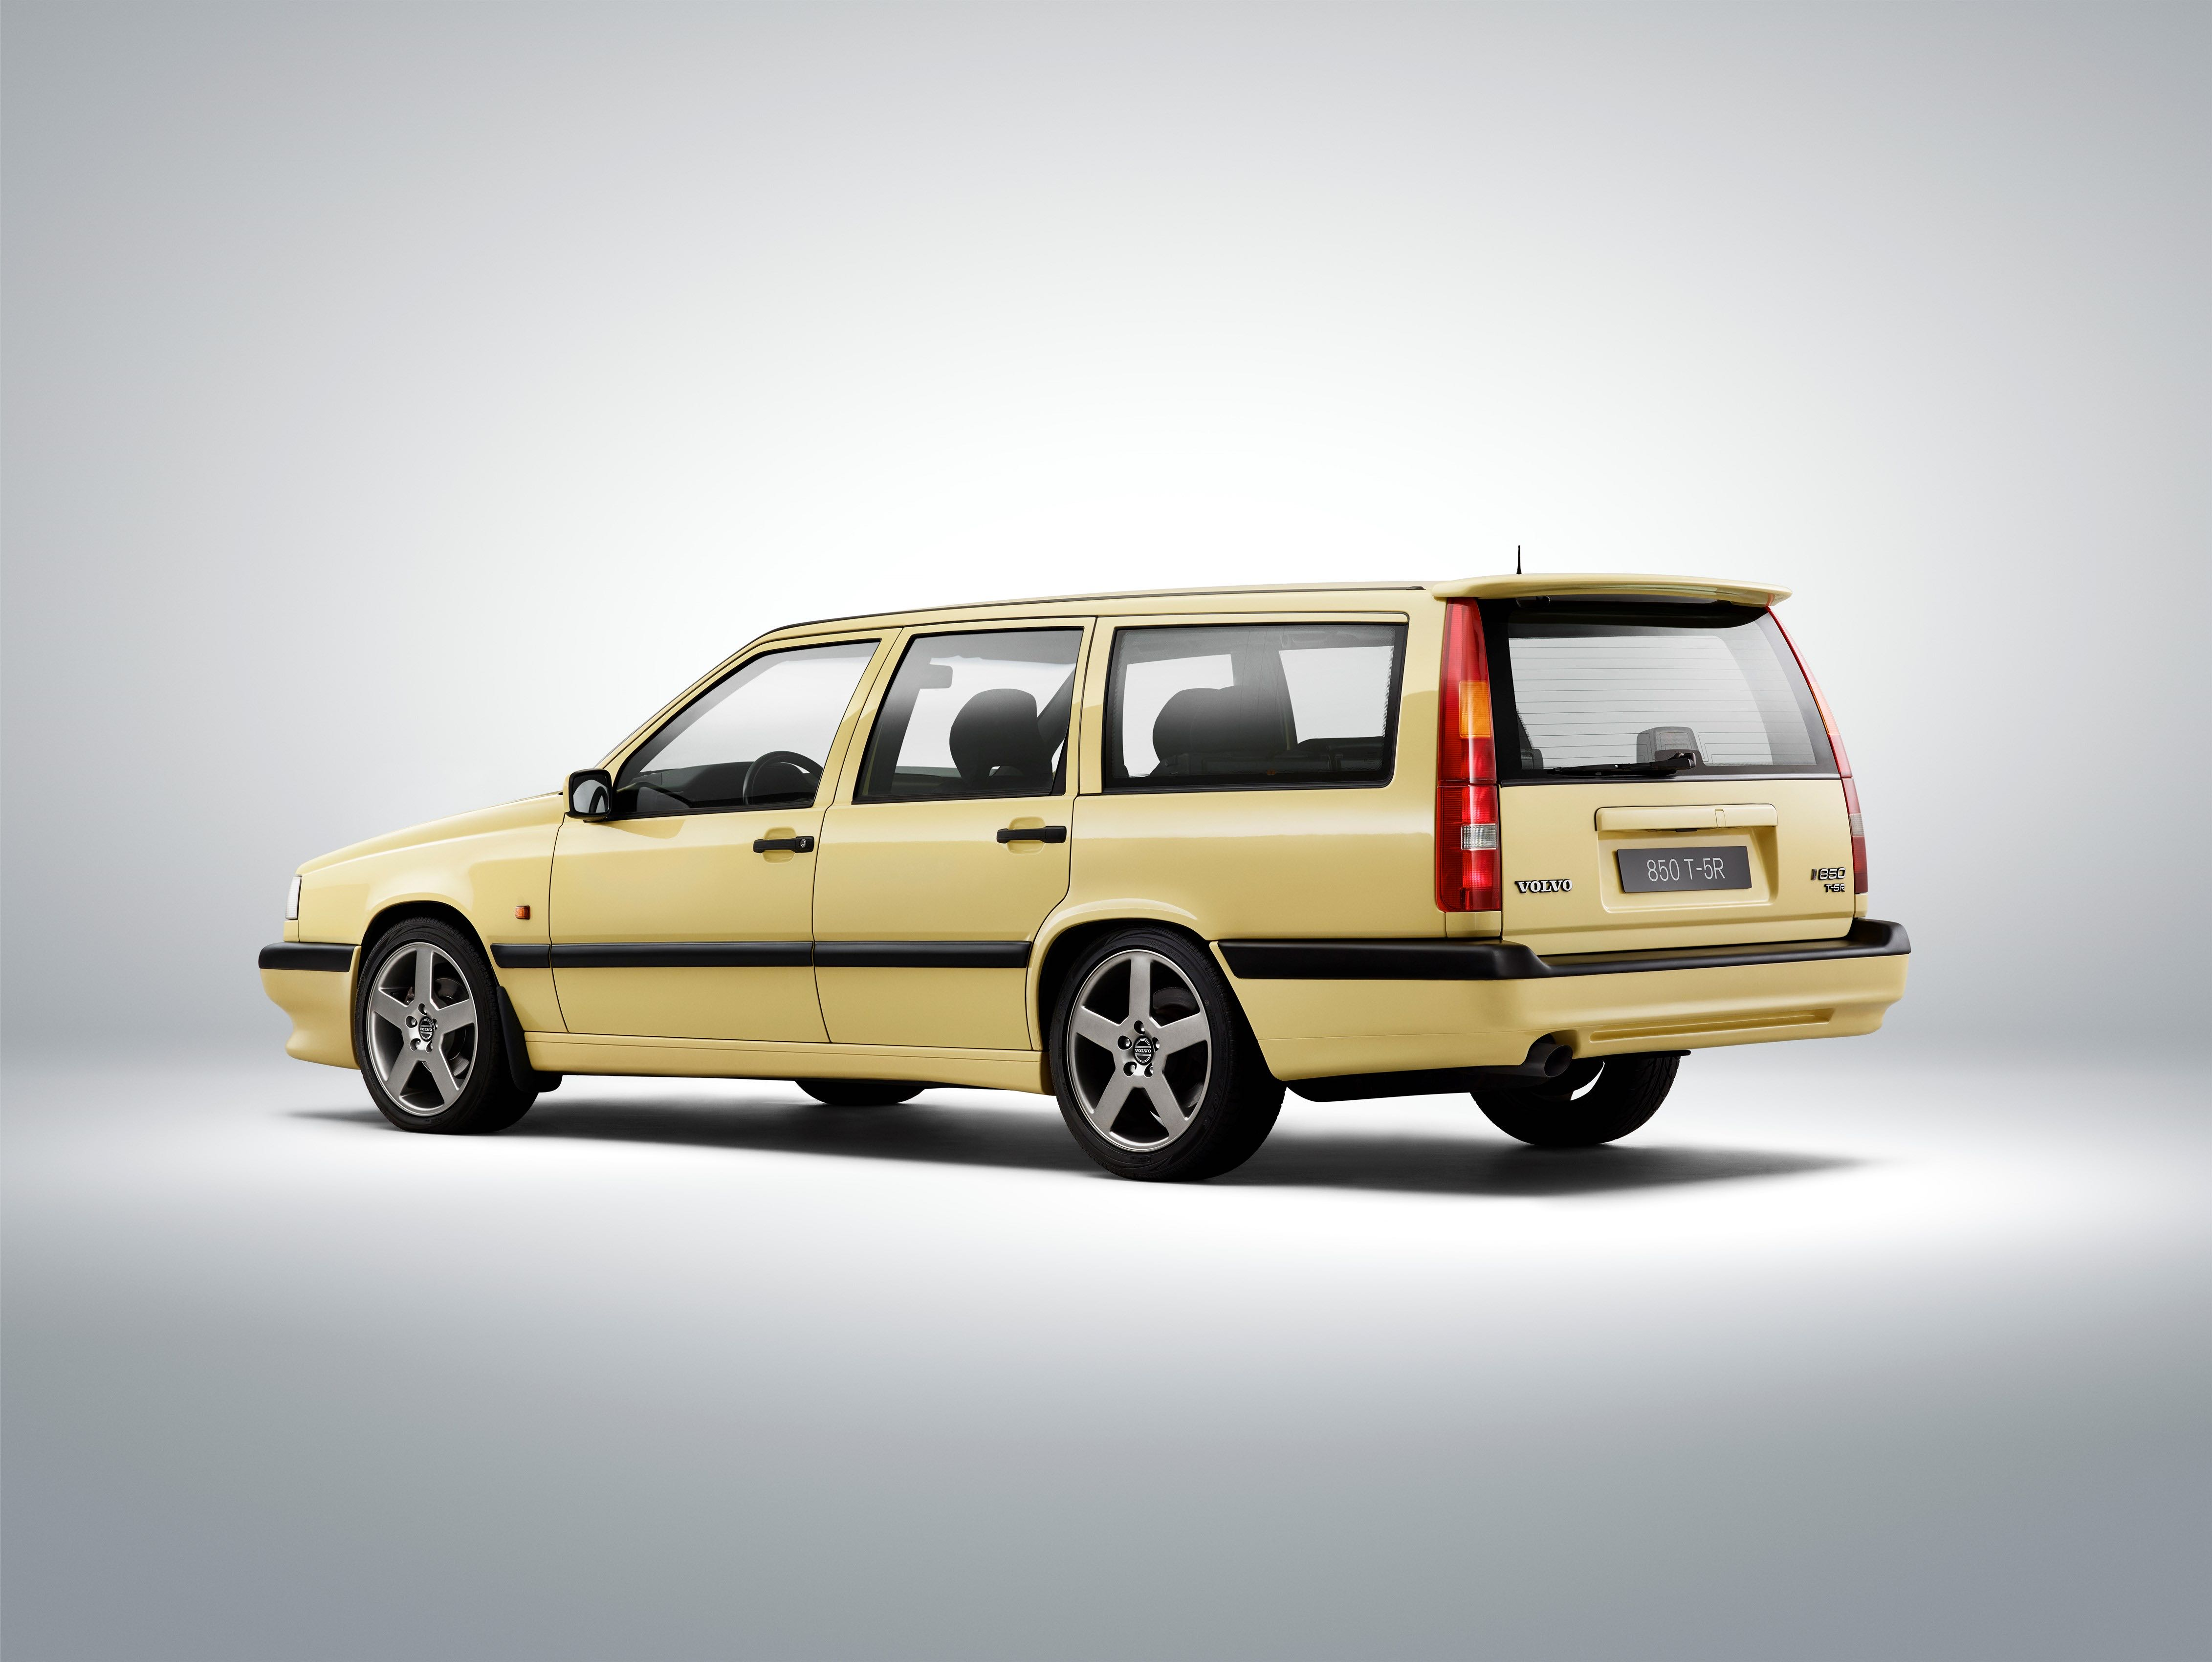 1995 Volvo T 5r 850 -  850, 850 wagon, 1991, 1995, Exterior, Historical, Images, T-5R, Yellow, Yellow T-5R